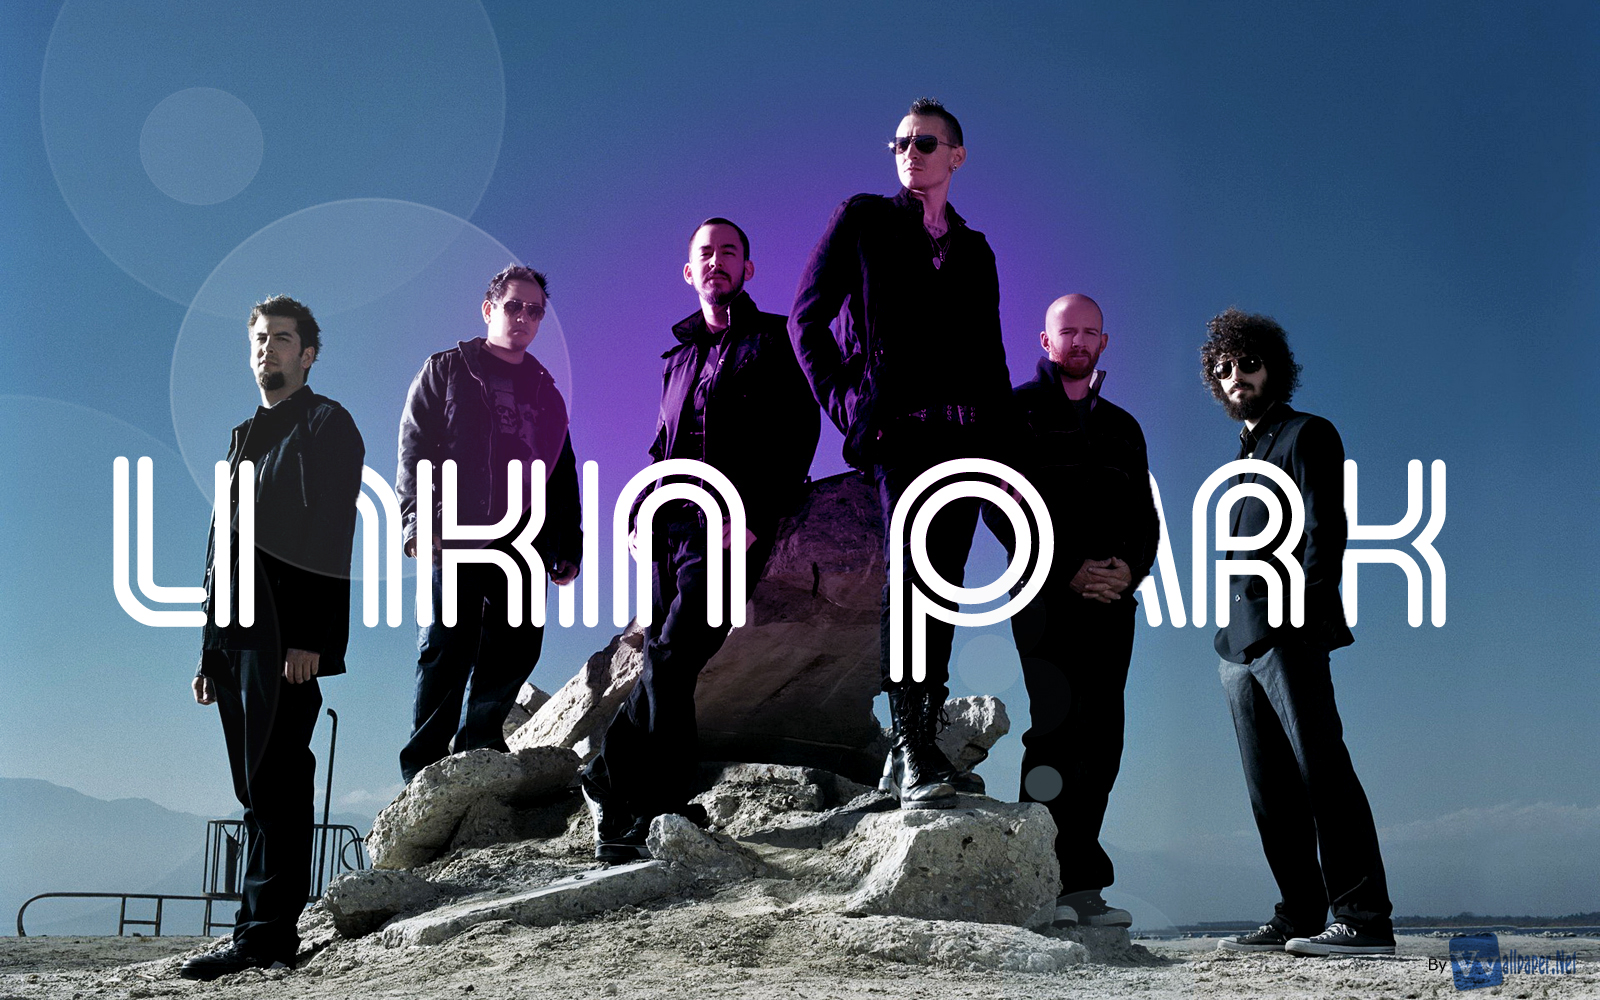 Free download Linkin Park Rock Music Band HD Wallpapers HD